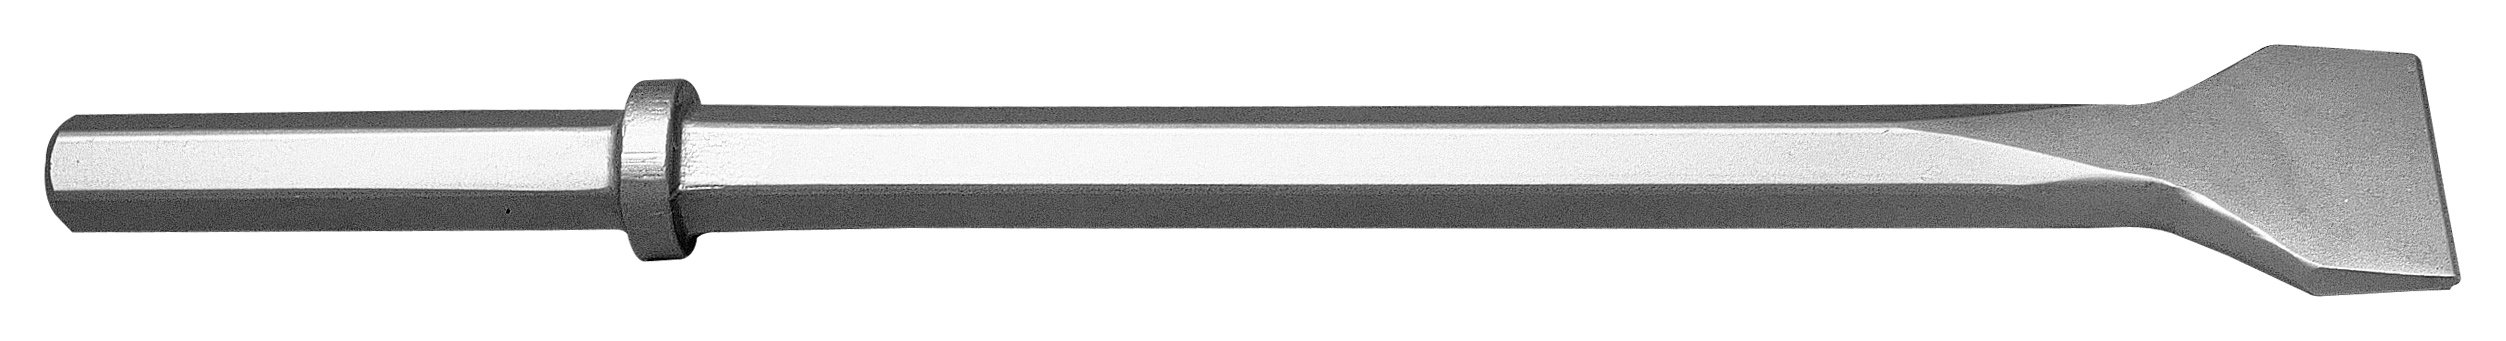 Champion Chisel, 1-1/8 by 6-Inch Hex Shank, 14-Inch